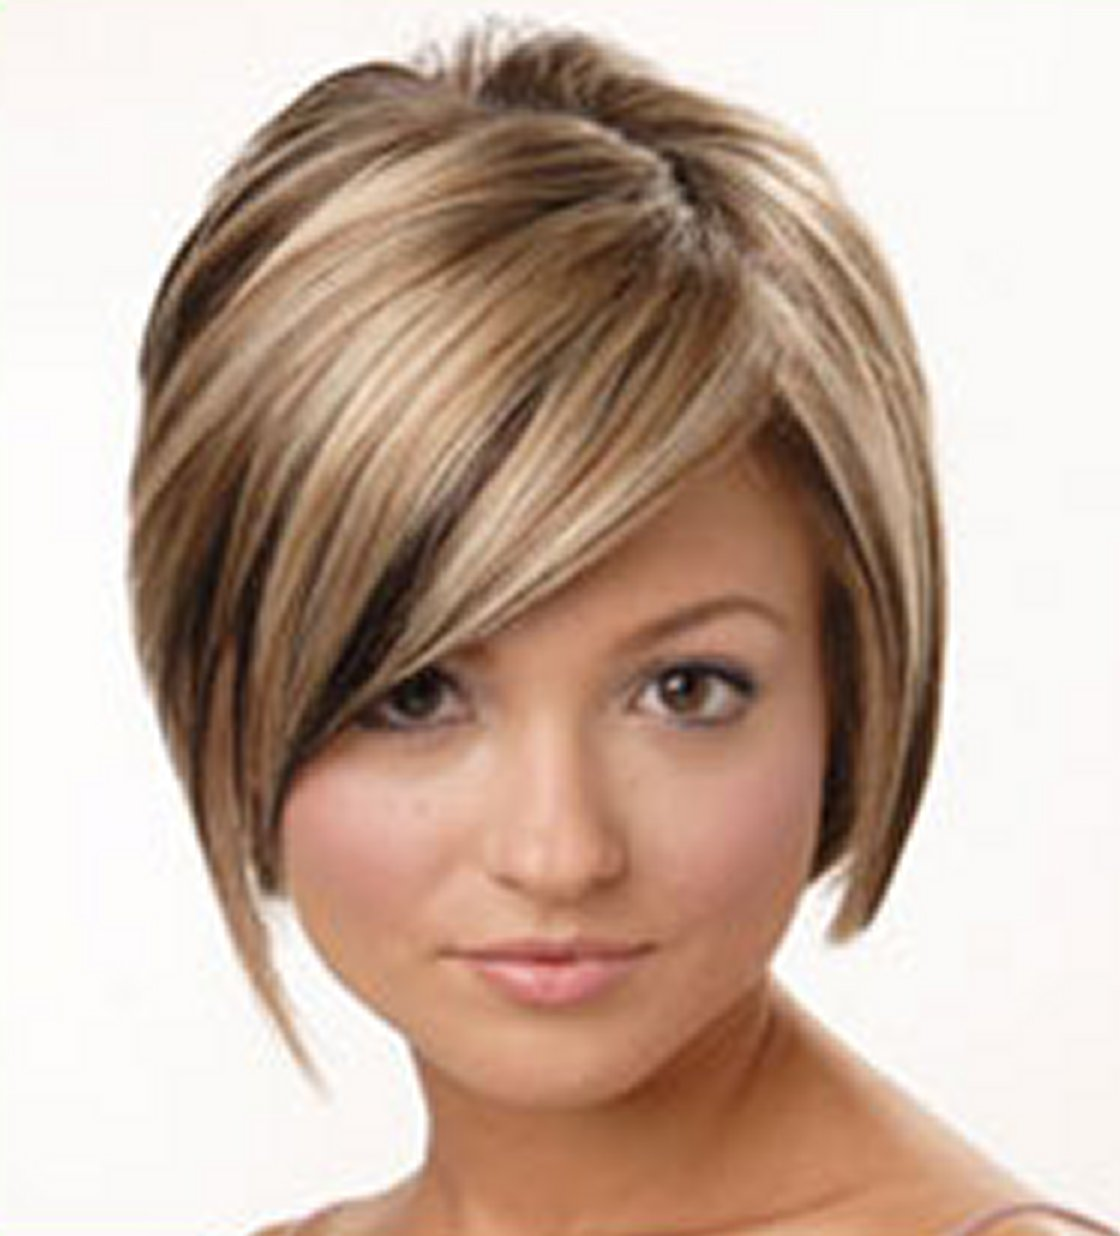 very-short-hairstyles-for-thick-hairhairstyles-short-hairstyle-for-thick-hair-type-hair-type-hair-trends-zs8cdlur